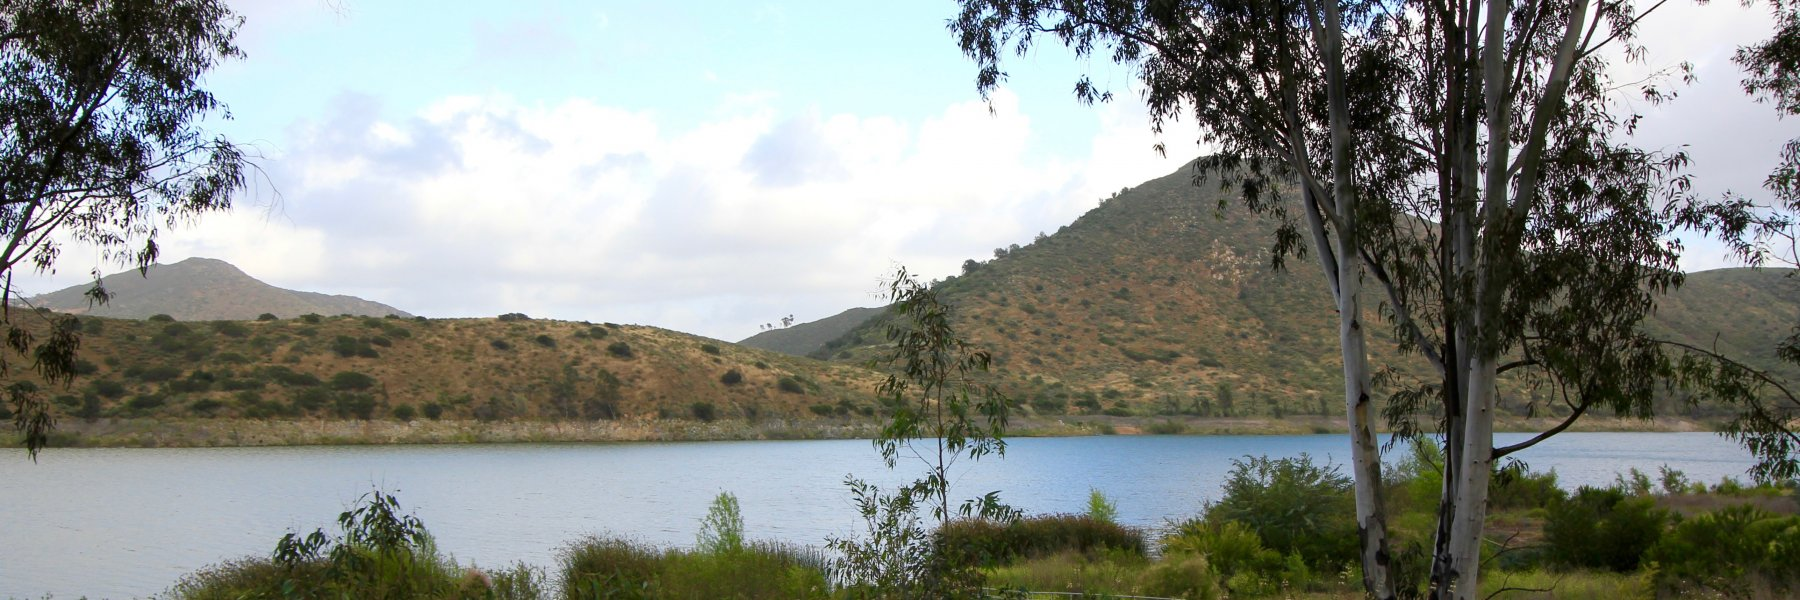 Lake Hodges is a community of homes in Escondido California